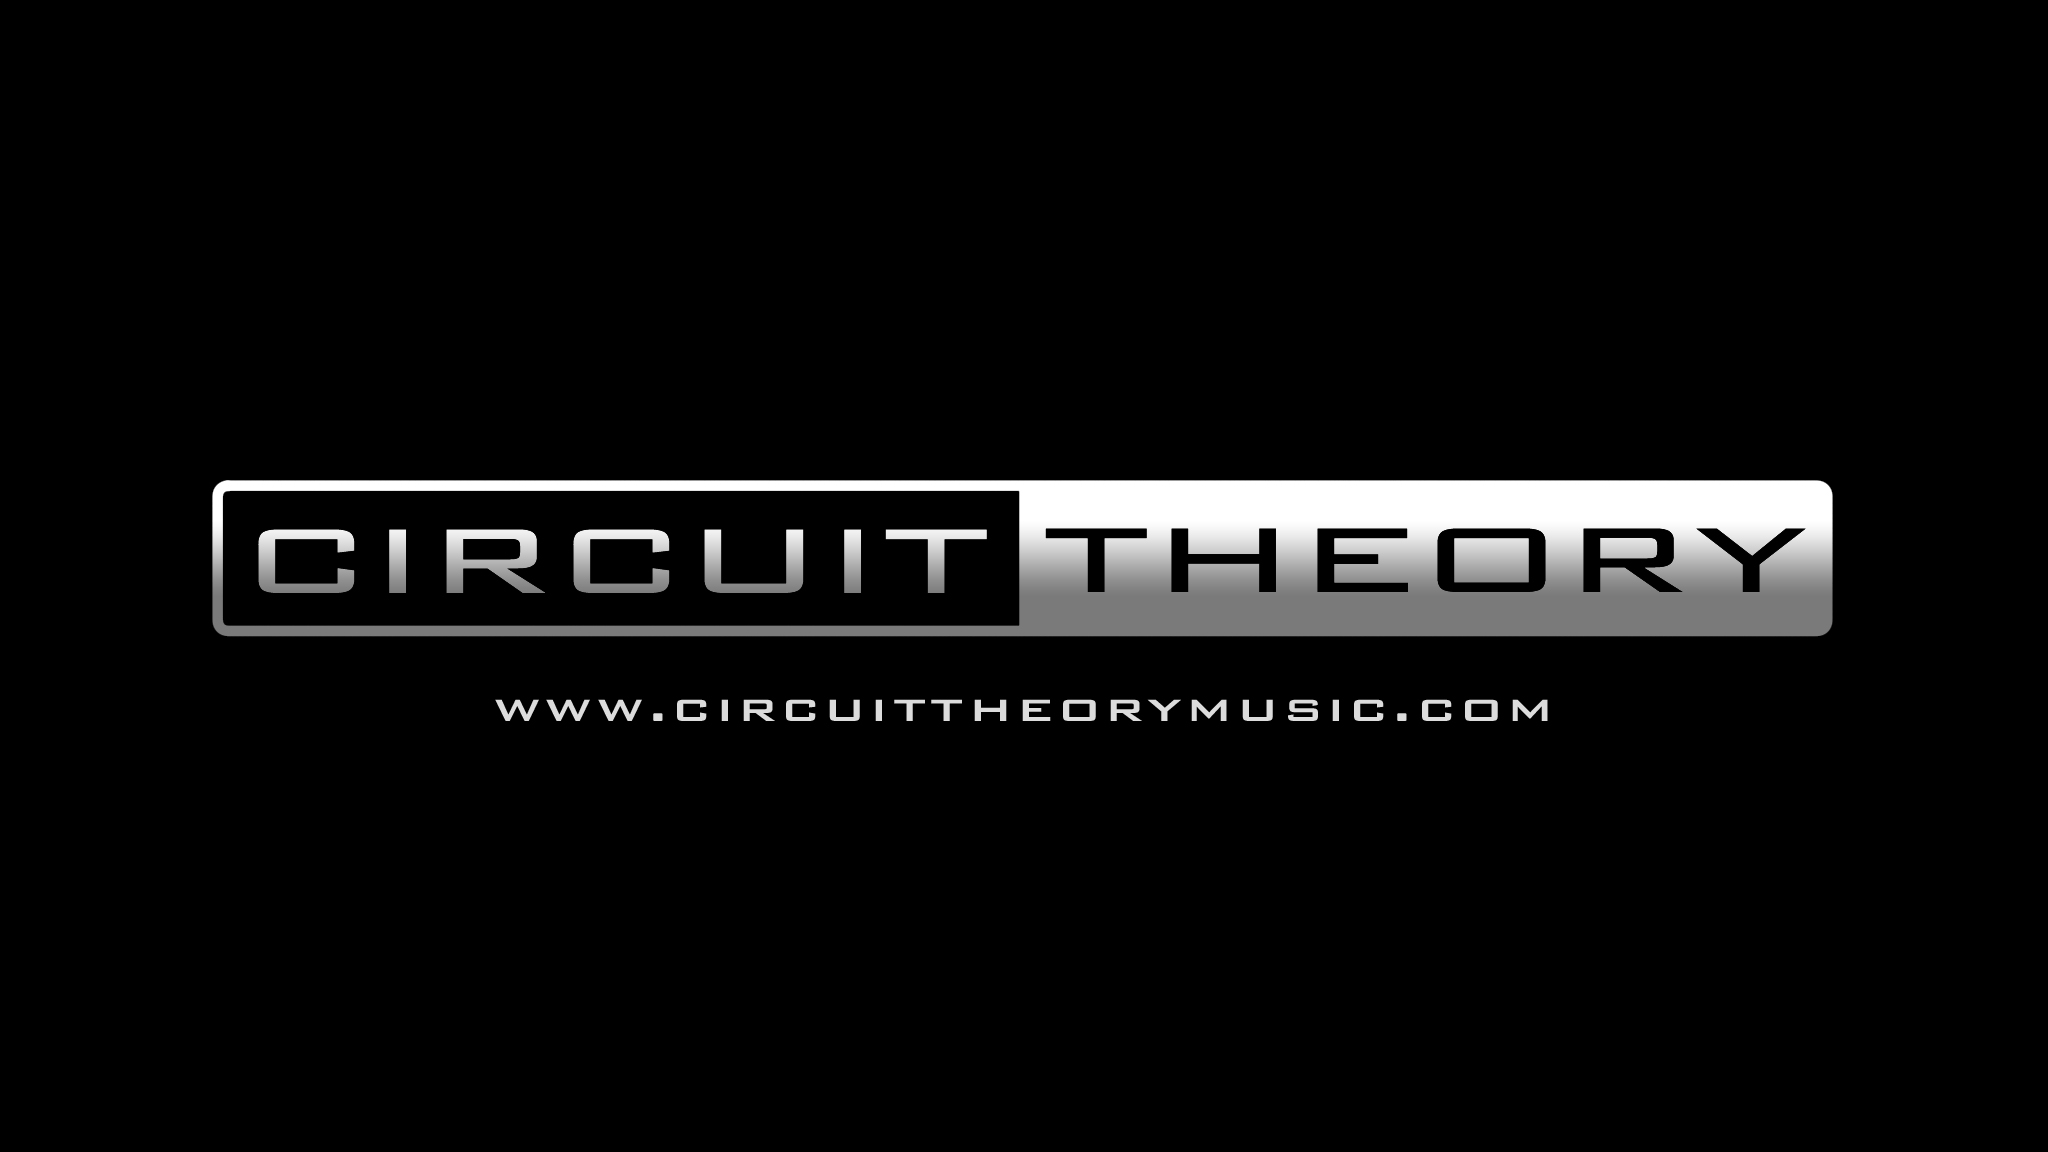 Circuit Theory logo